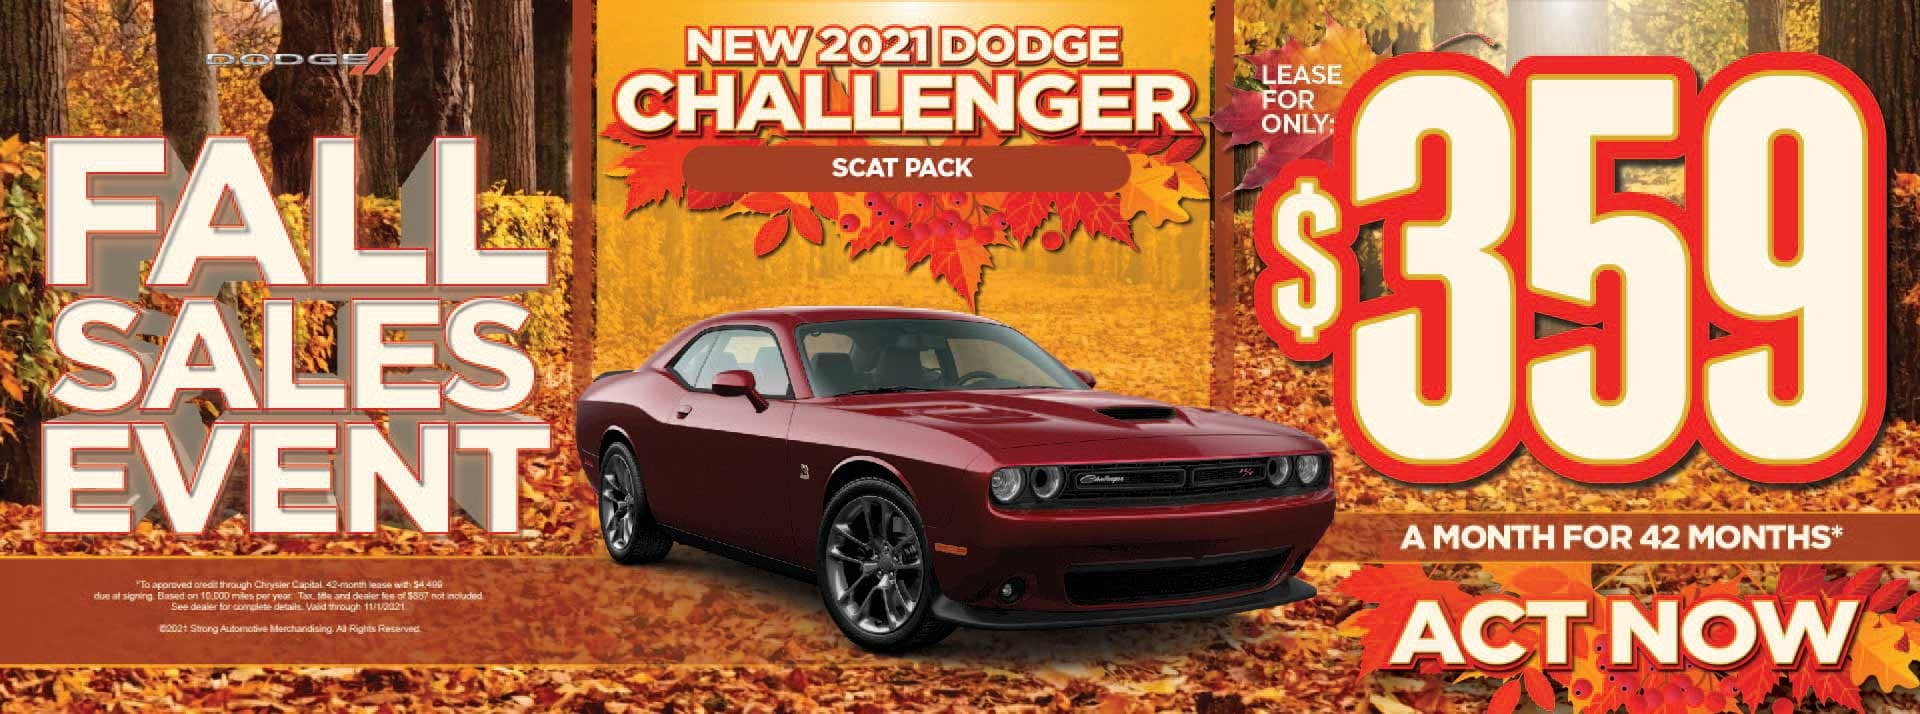 New 2021 Dodge Challenger Scat Pack - $359 / mo - ACT NOW